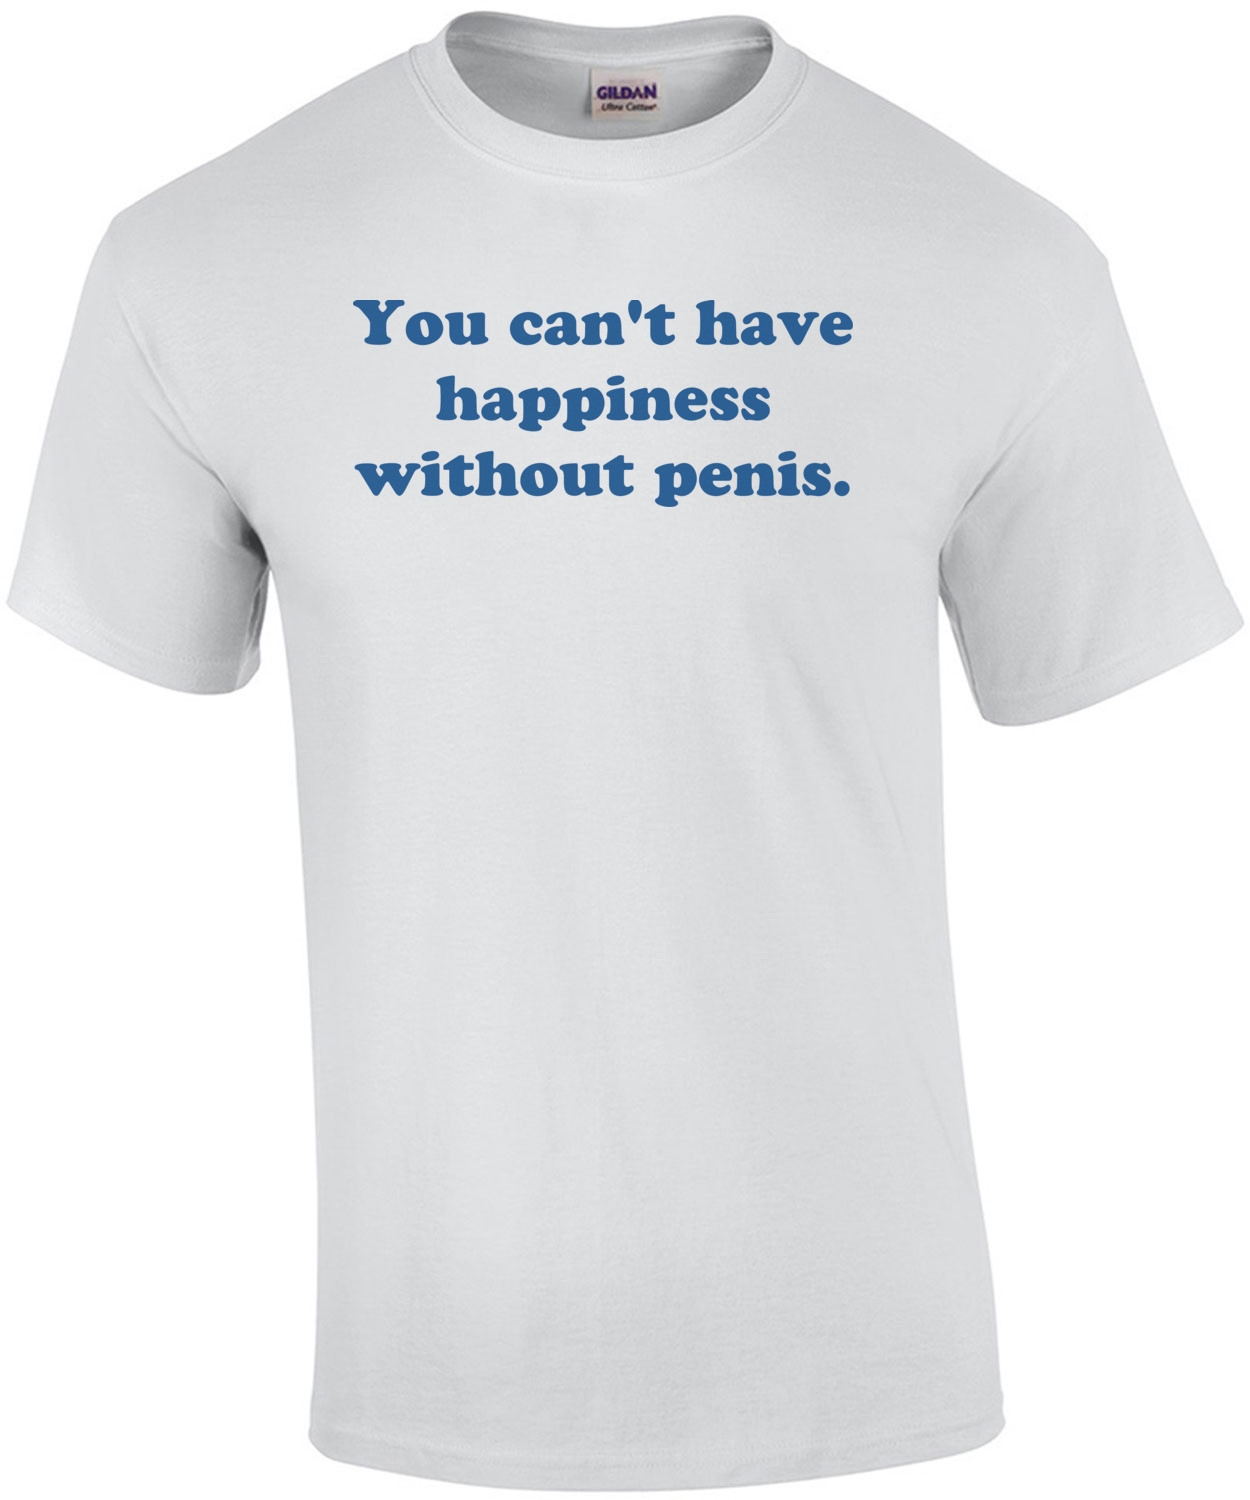 You can't have happiness without penis. Shirt